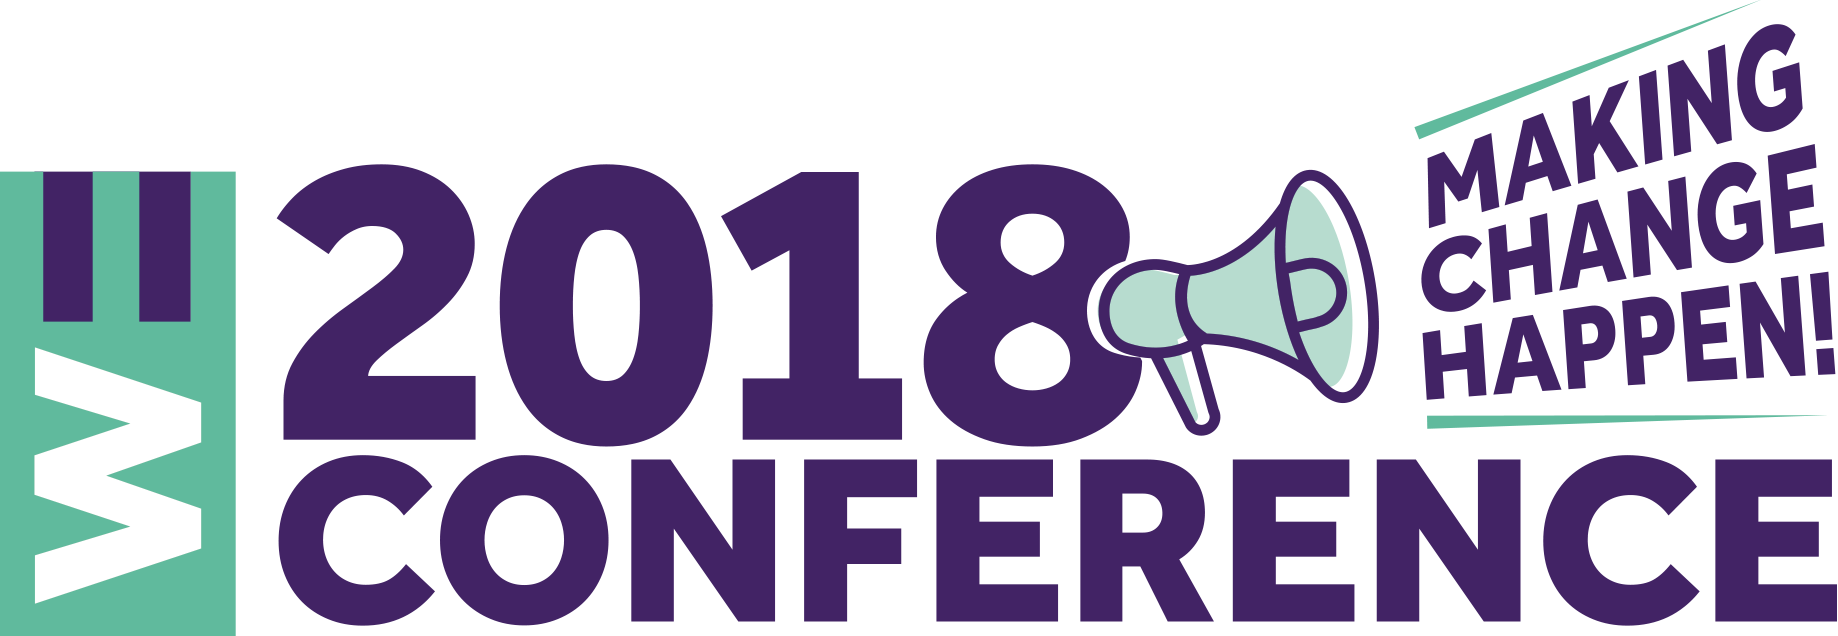 WEP conference banner.png